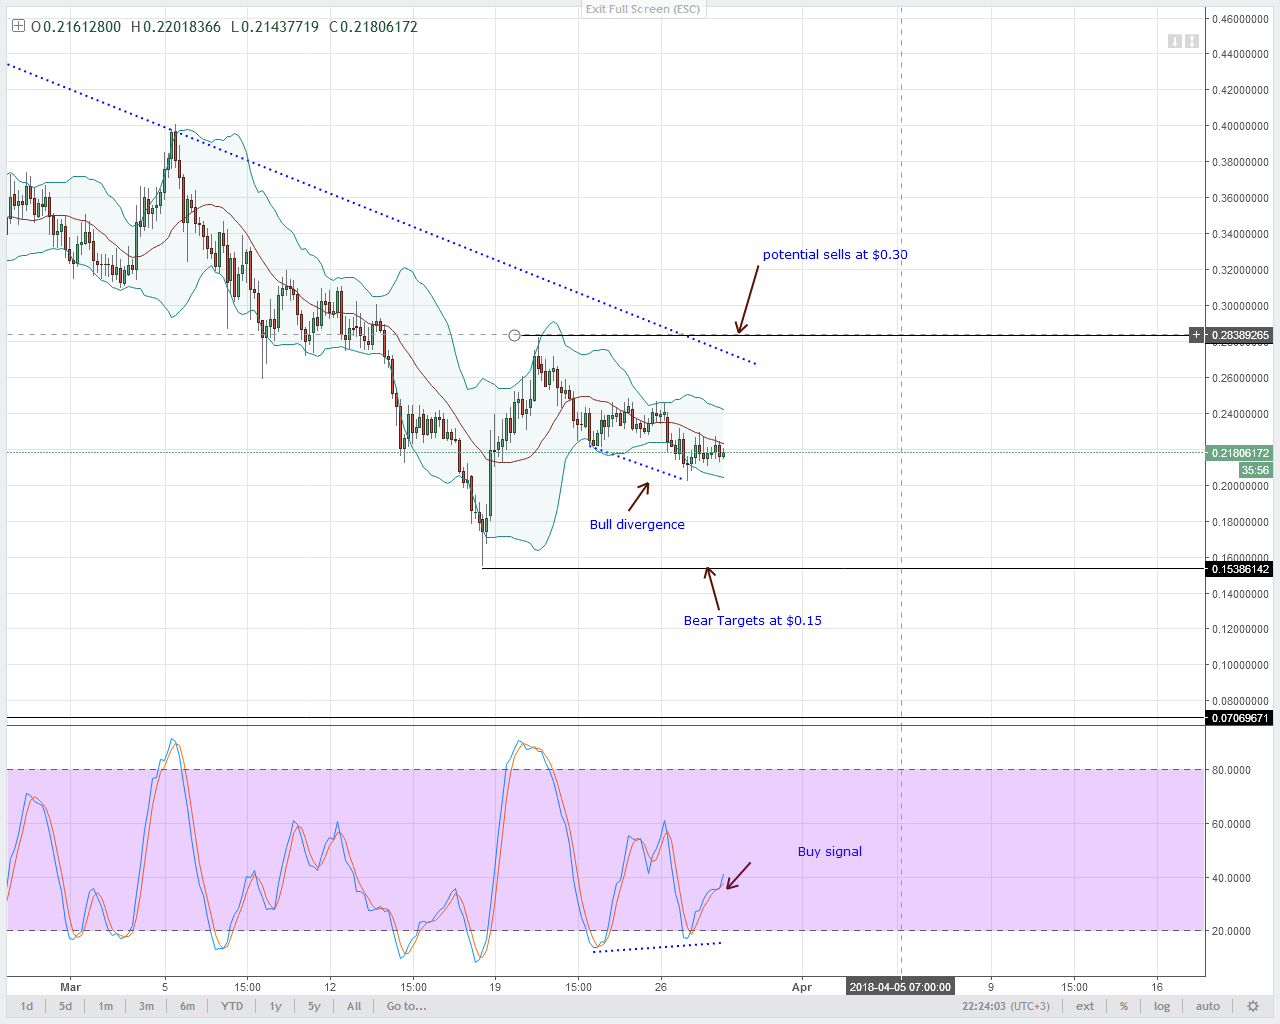 Stellar Lumens Technical Analysis